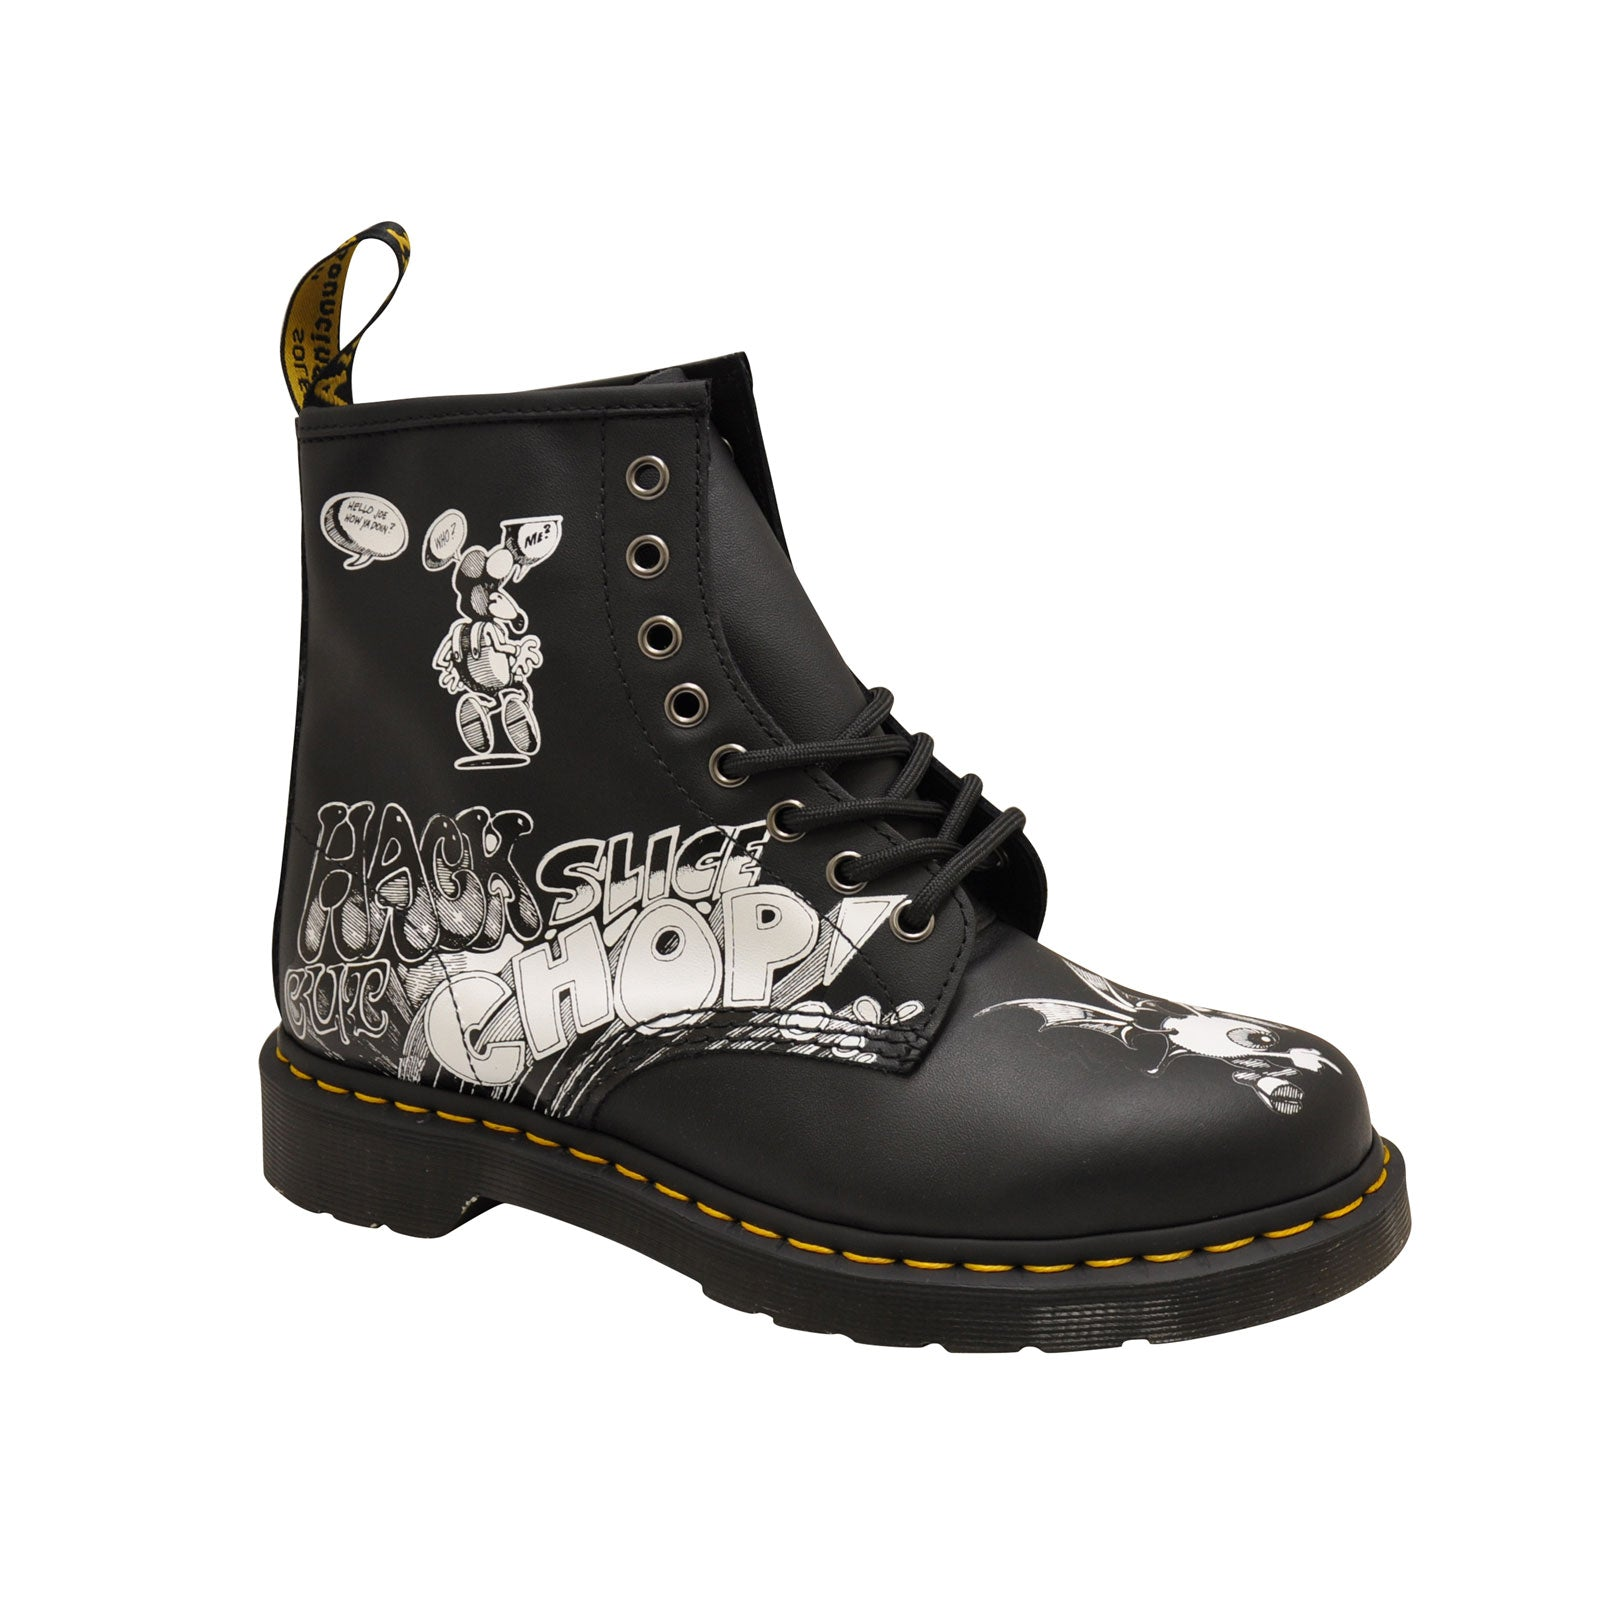 Dr. Martens 1460 Rick Griffin-Black/White